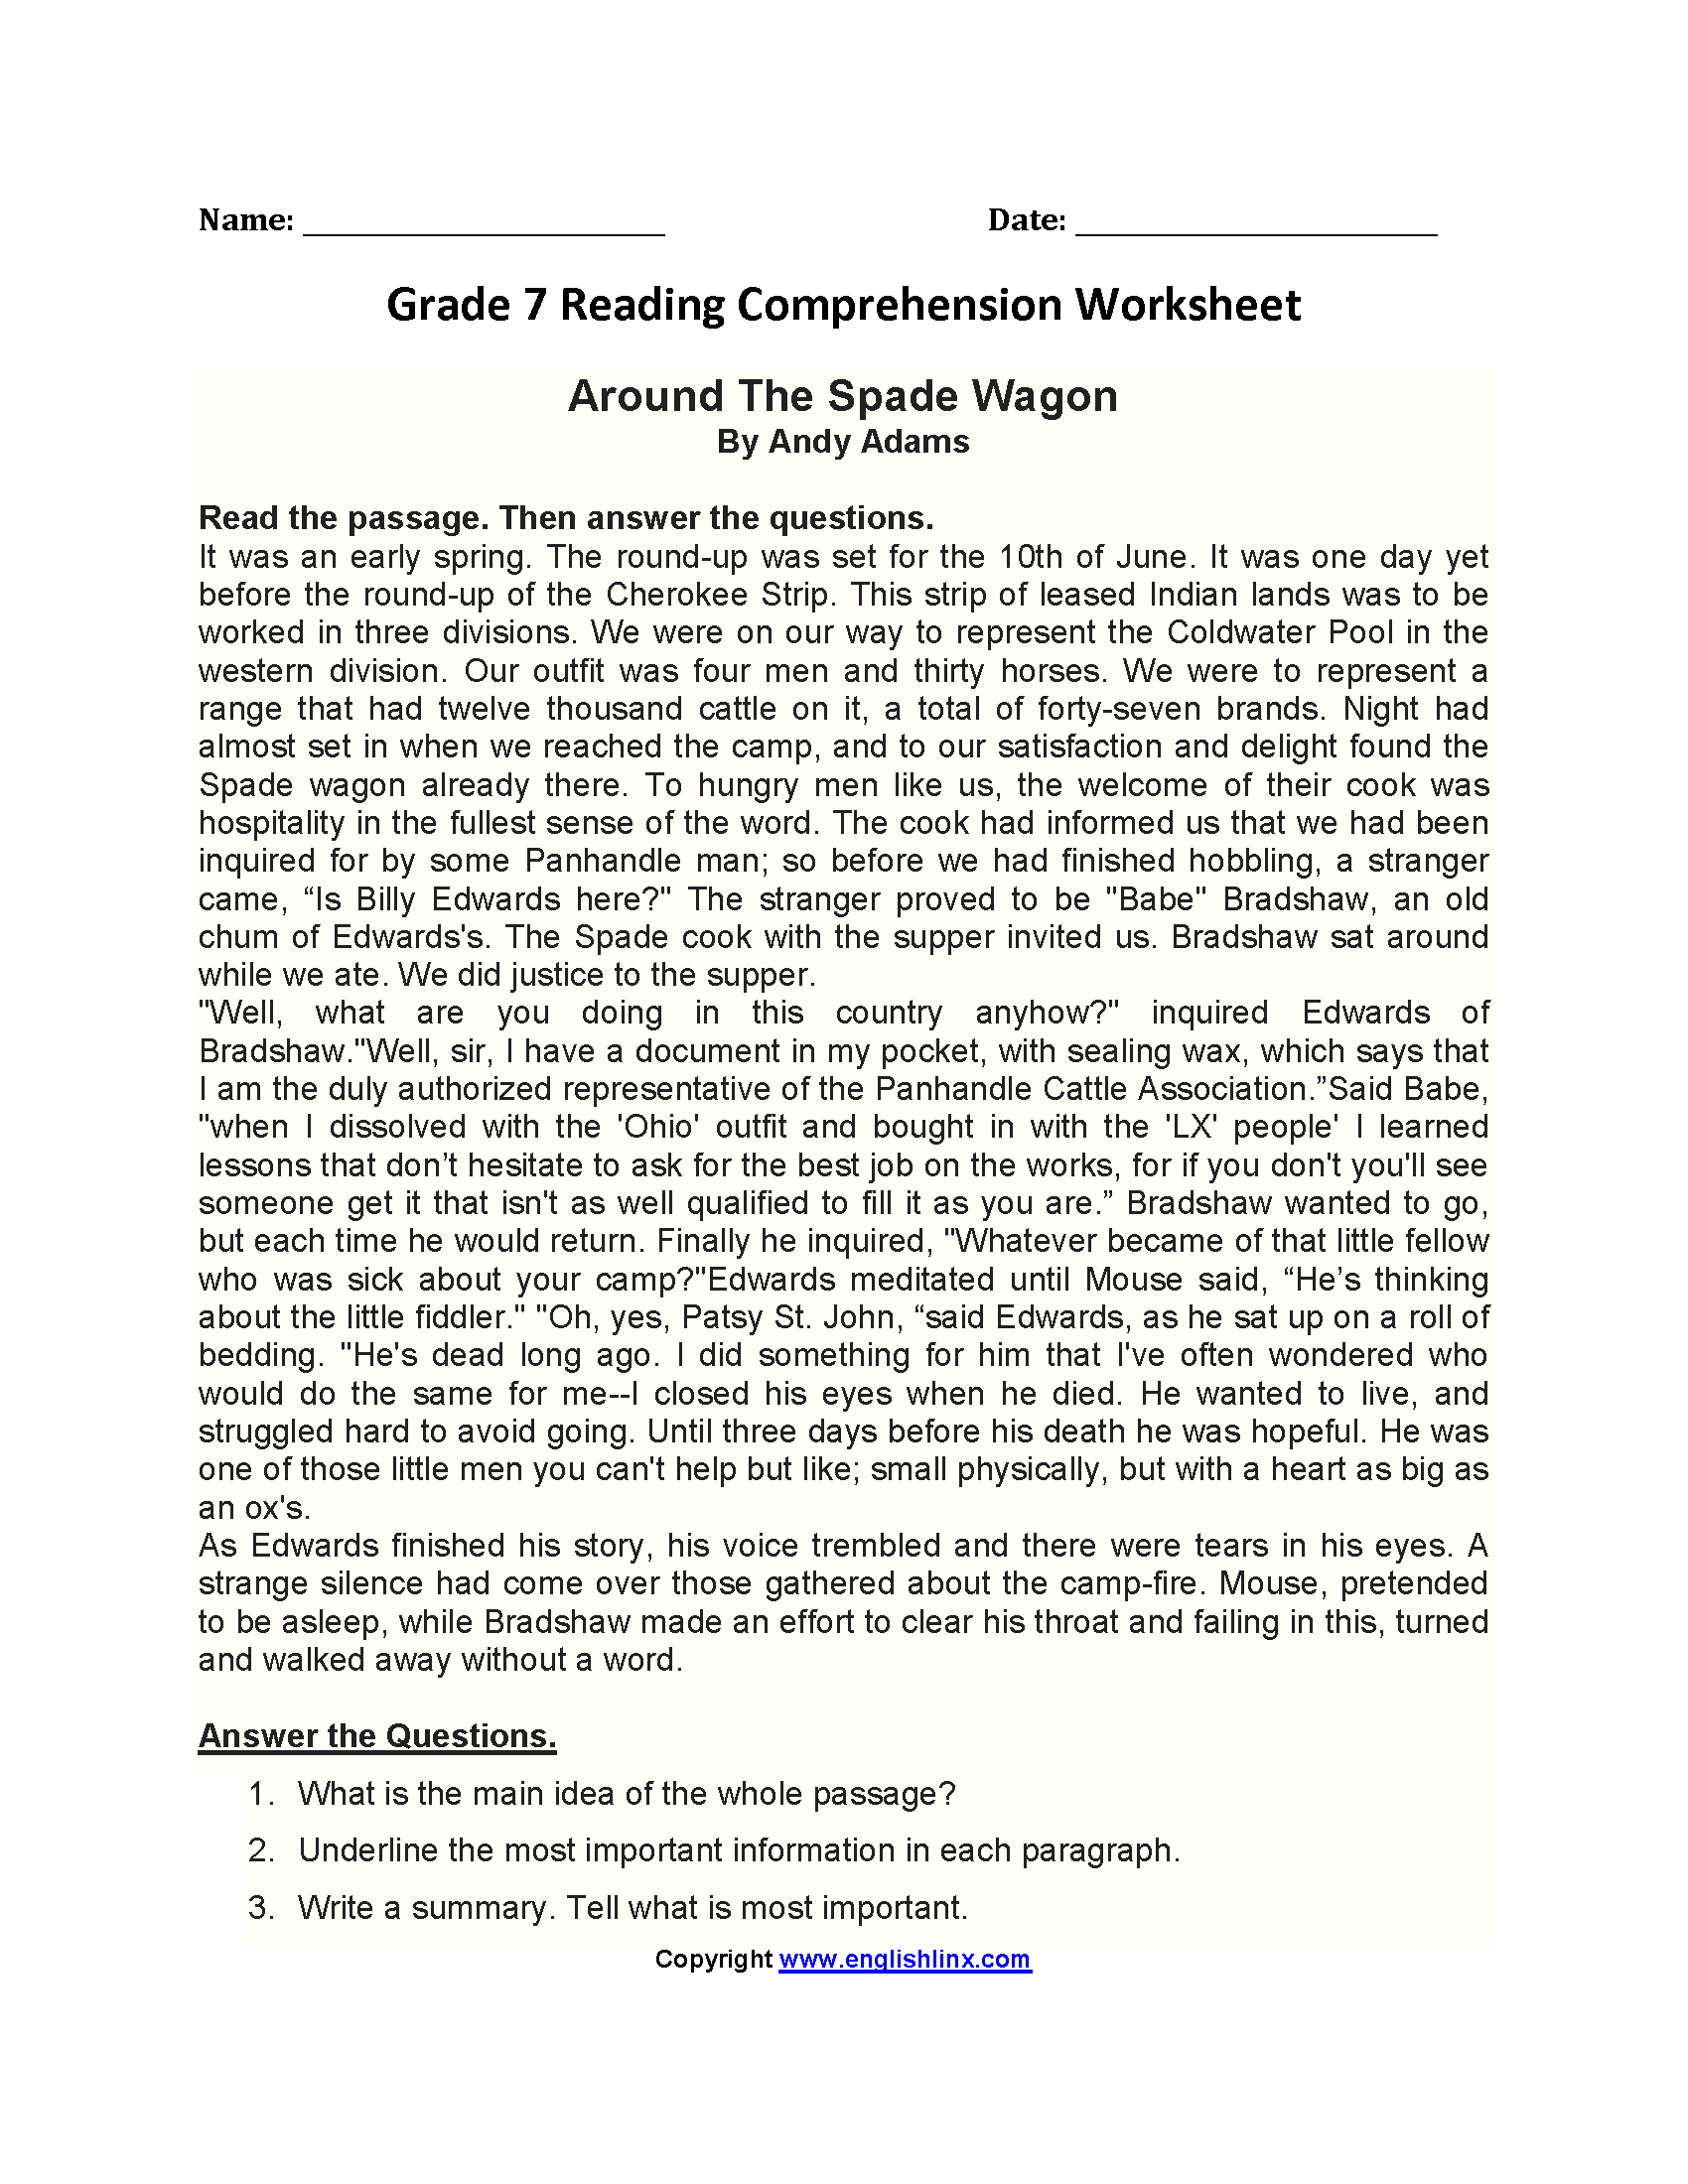 Around the Spade Wagon\u003cbr\u003eSeventh Grade Reading Worksheets   Reading  worksheets [ 2200 x 1700 Pixel ]